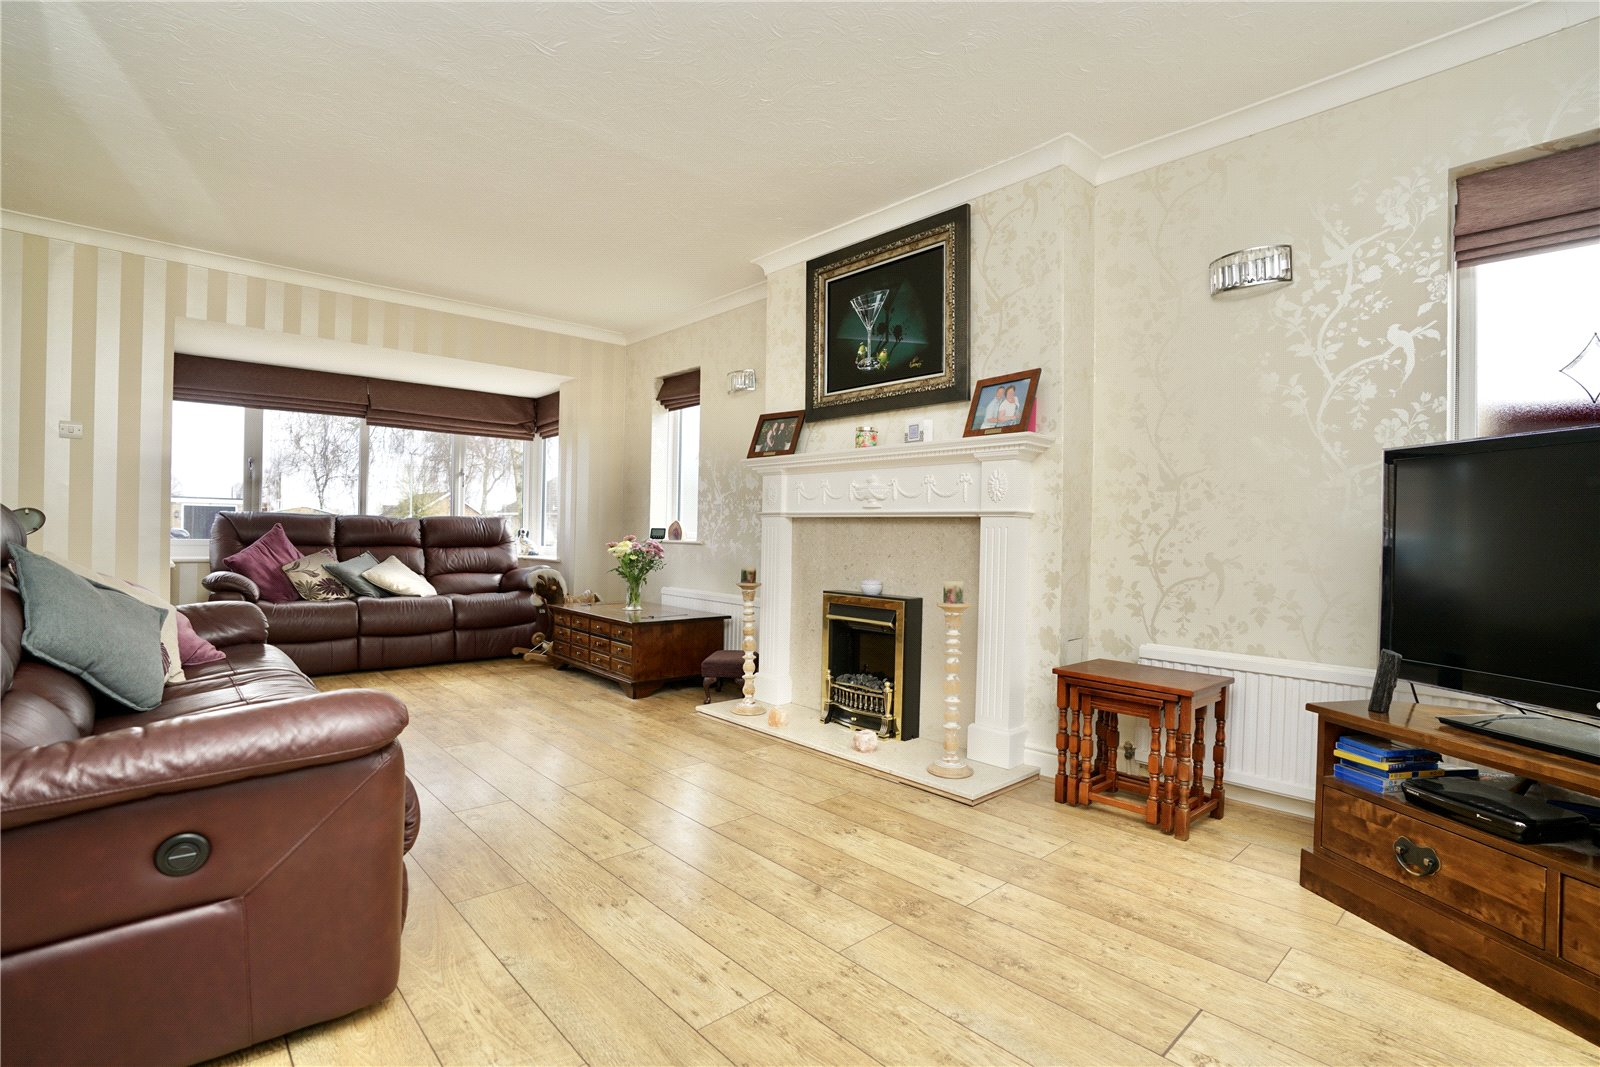 3 bed house for sale in Barley Road, Eaton Socon 2